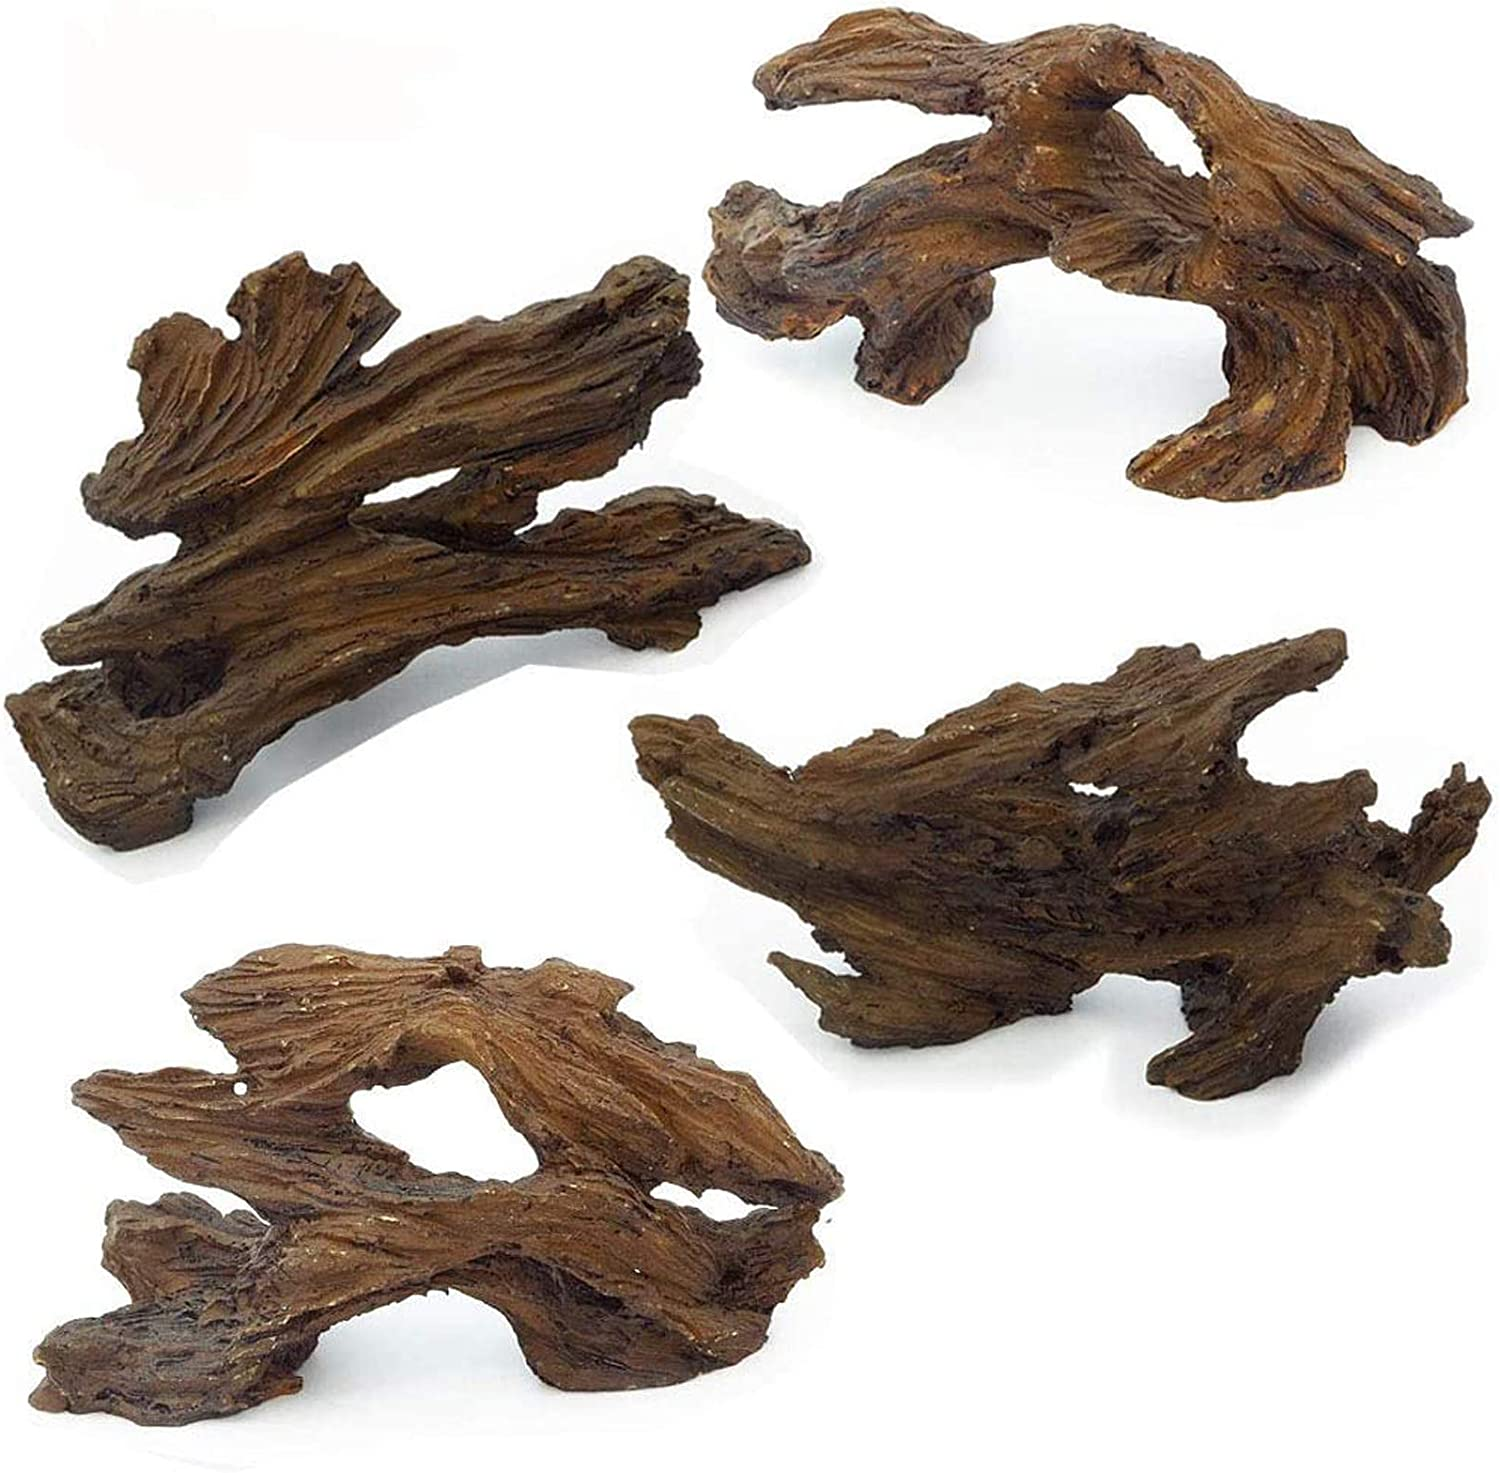 Hamiledyi Aquarium Resin Driftwood Decoration,Aquarium Decorations Log,Betta Fish Ornament 20 Gallon Fish Tank Wood with Holes & Aquarium Hideout Caves Freshwater Ornament(4 Pcs)